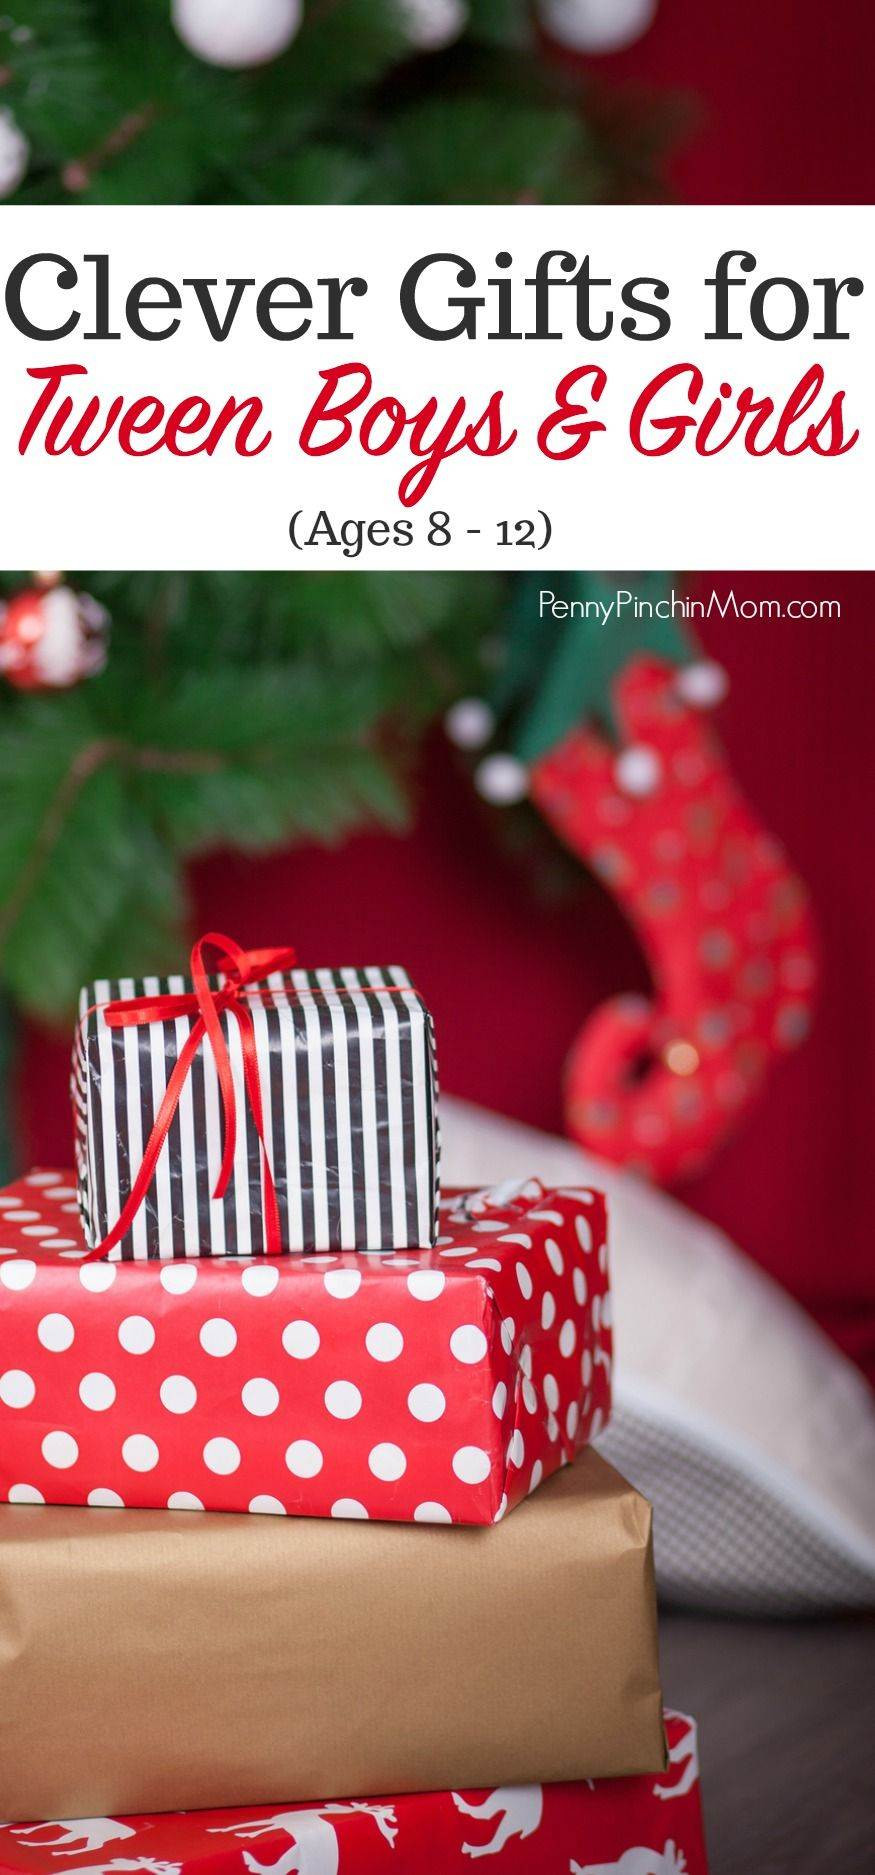 Best ideas about Gift Ideas For Son'S Girlfriend . Save or Pin Christmas Gift Ideas for Girlfriend Best What to A 7 Now.